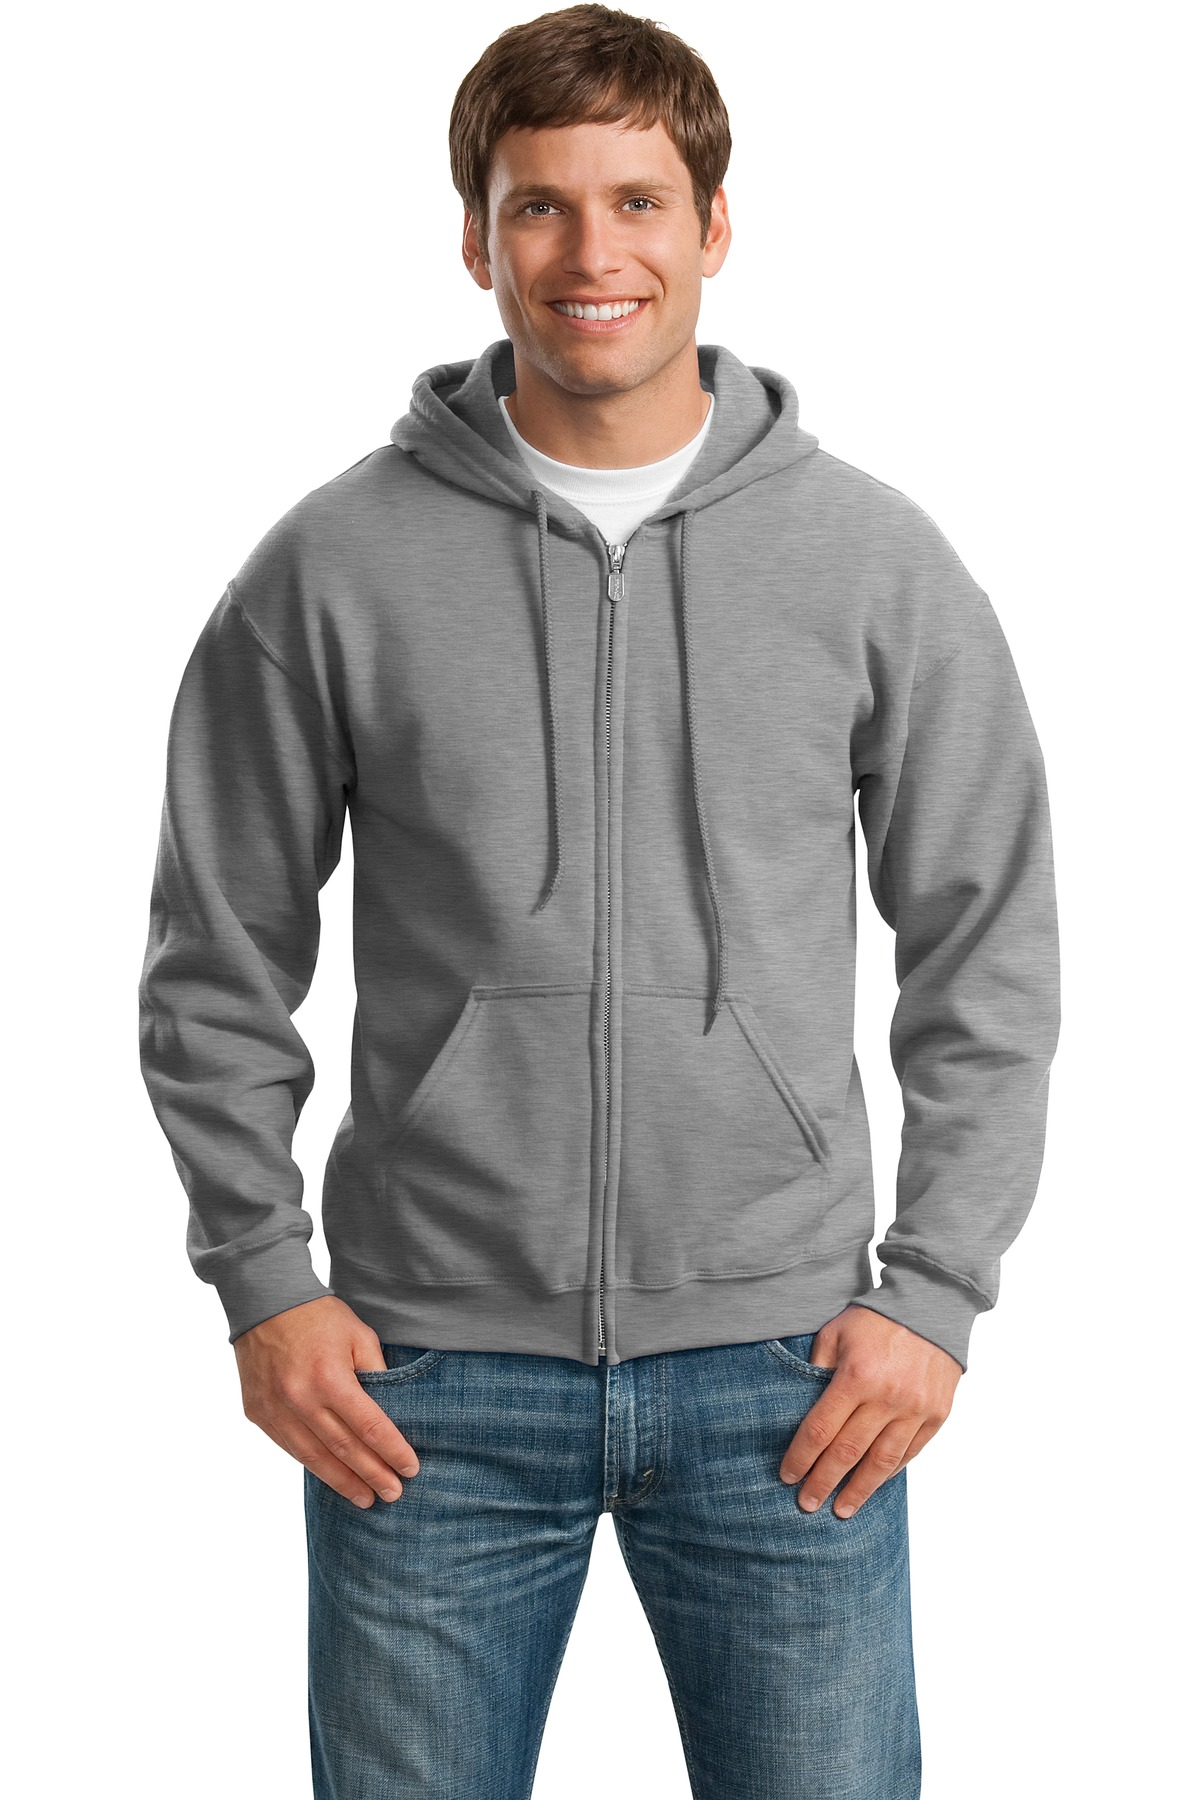 Gildan ®  - Heavy Blend™ Full-Zip Hooded Sweatshirt. 18600 - Sports Grey